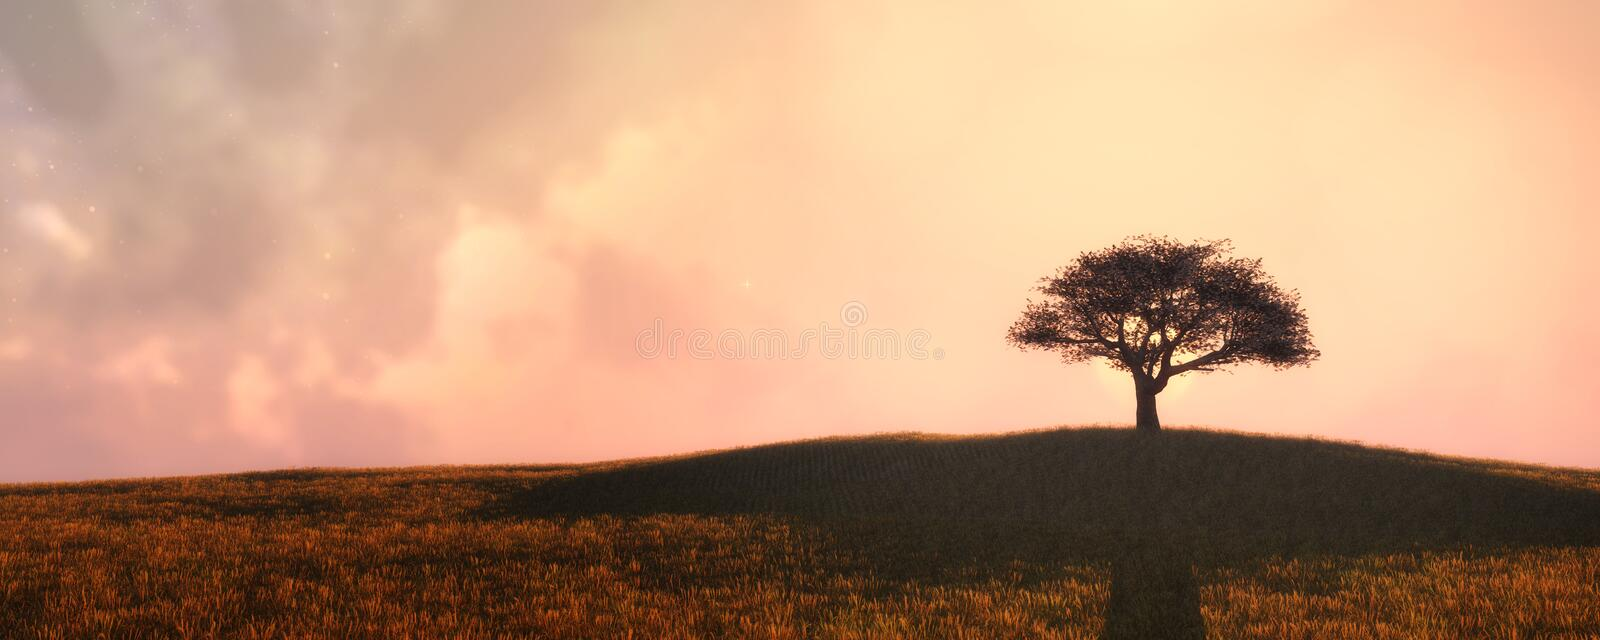 Lonely Sunset Silhouette Stock Illustrations – 561 Lonely ...